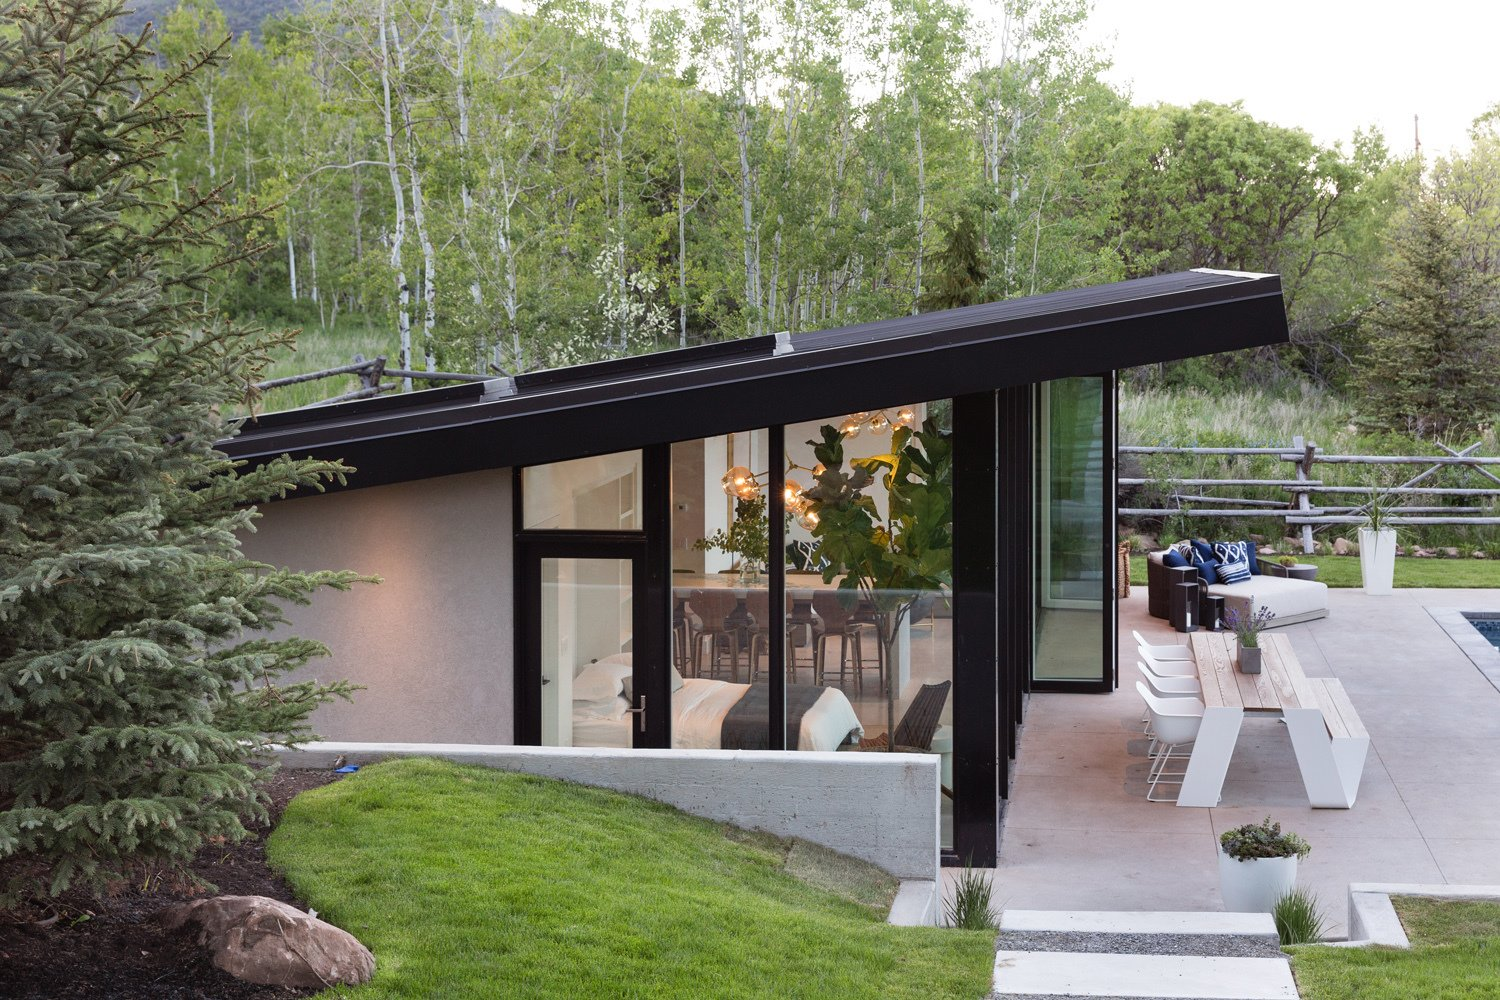 Exterior, Metal Siding Material, Metal Roof Material, Glass Siding Material, Stucco Siding Material, and Shed RoofLine The roof has a large tongue-and-groove wood overhang that shades the pool deck and outdoor dining area.  Modern Mountain Pool House by Melissa Kelsey